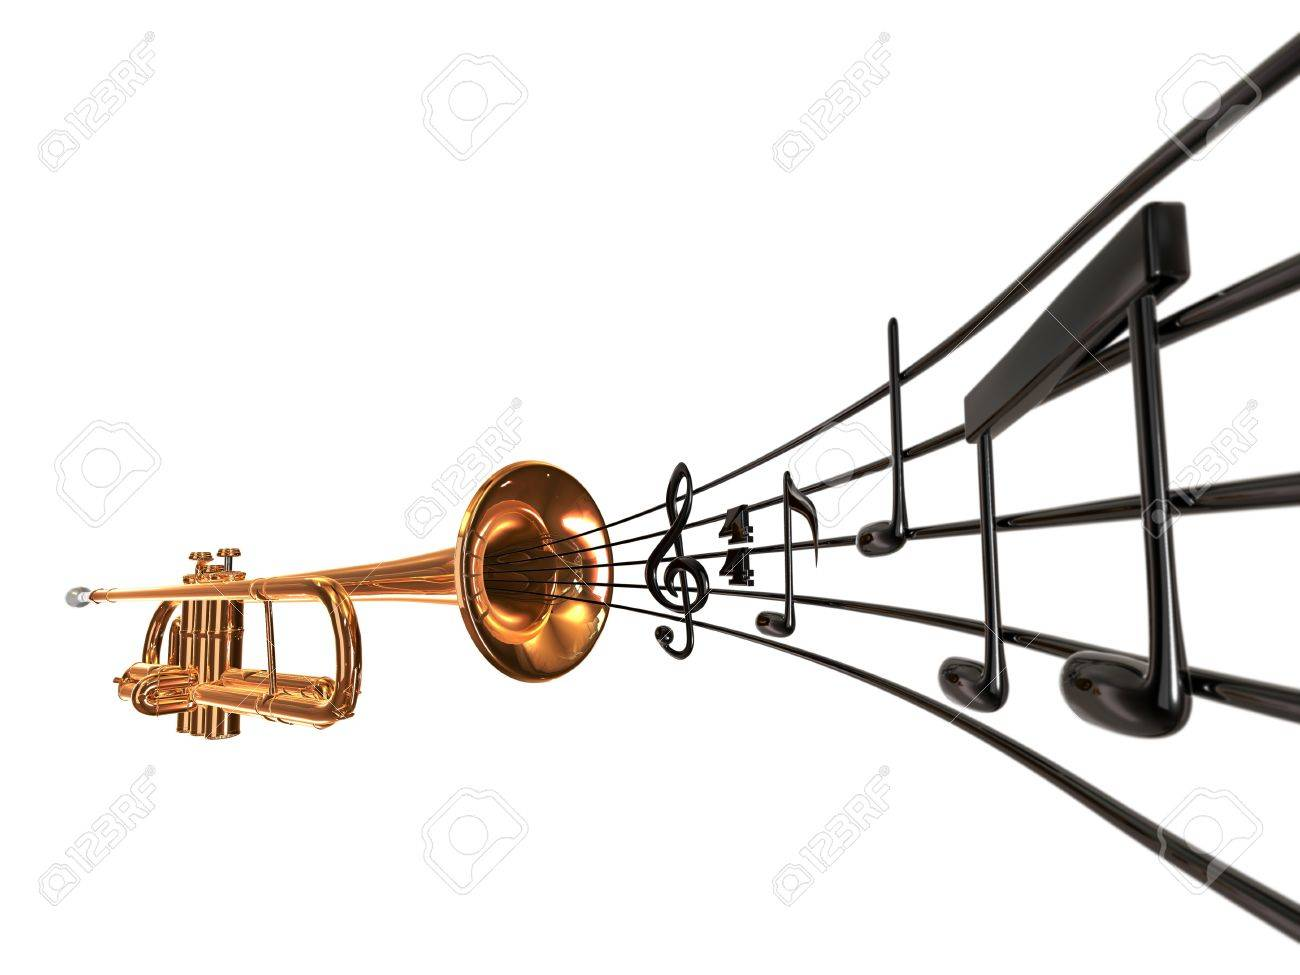 brass cornet at slight angle with a curved music score blowing